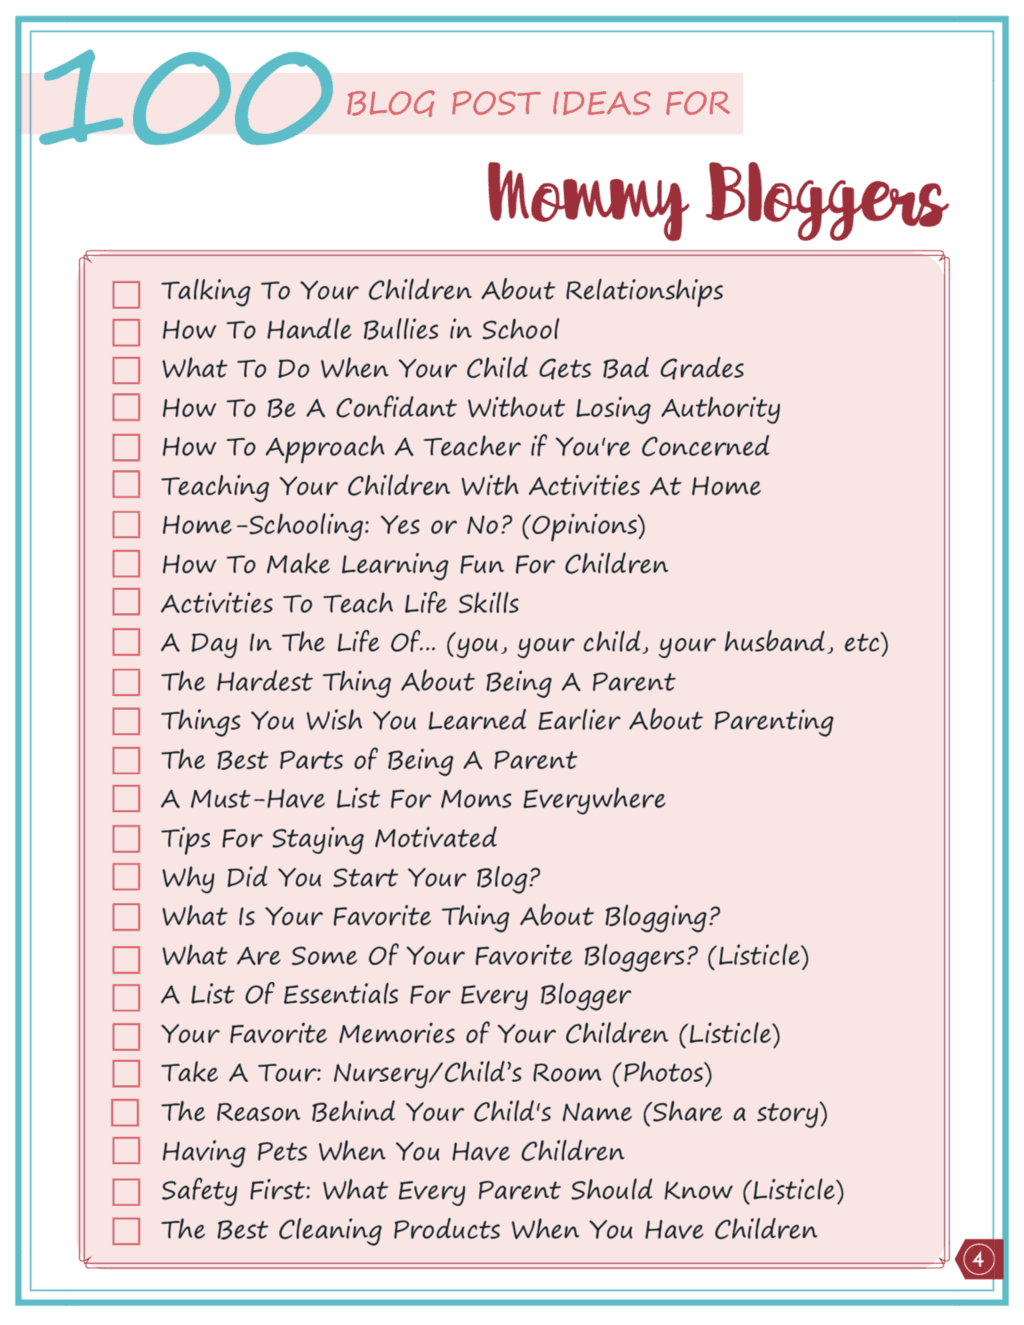 Printable checklist of 100 mom blog ideas to inspire you!